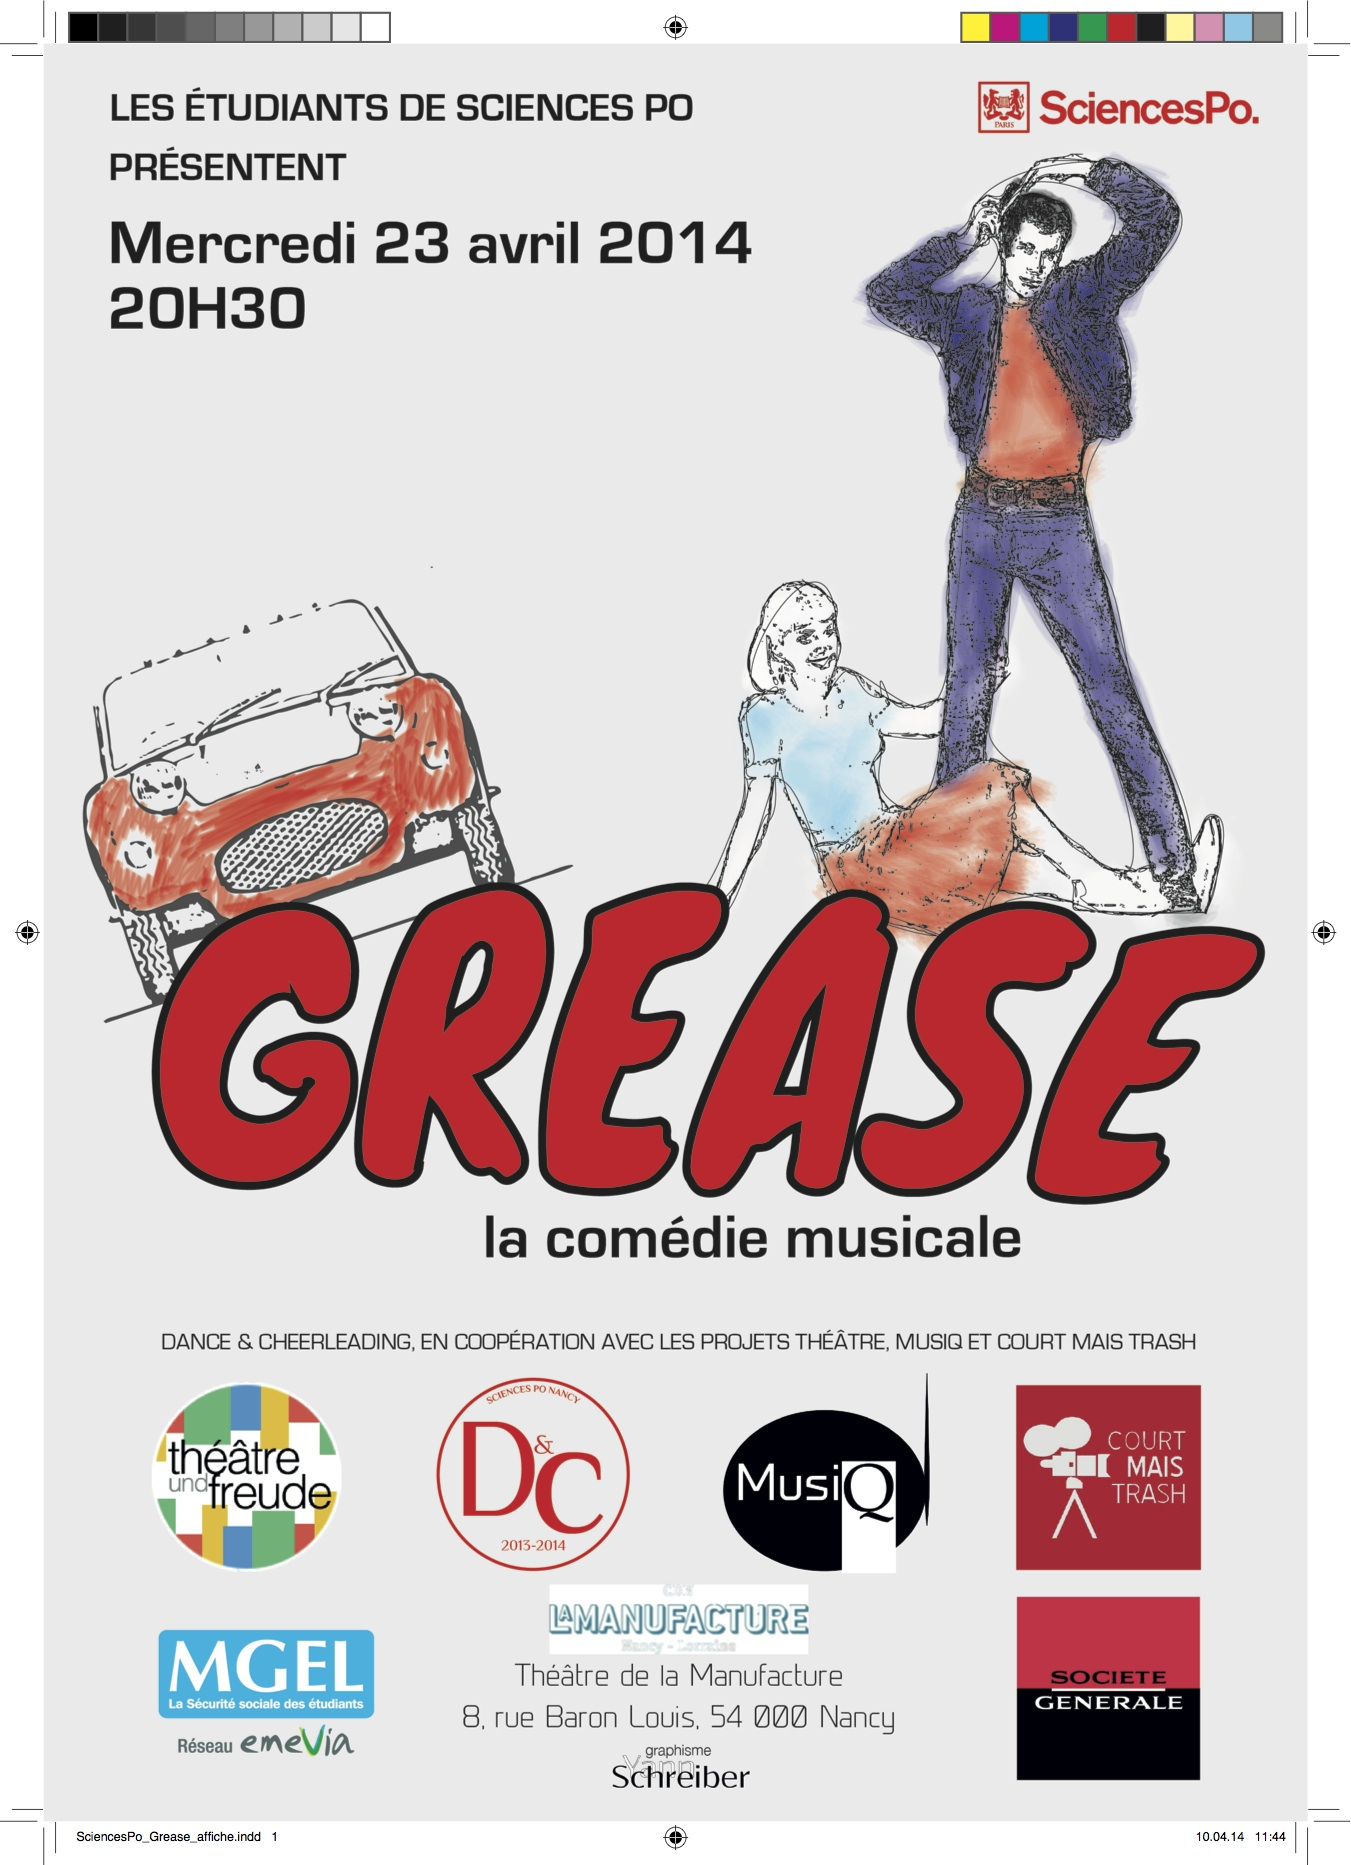 Advertising for the 2014 musical at Sciences Po: Grease.